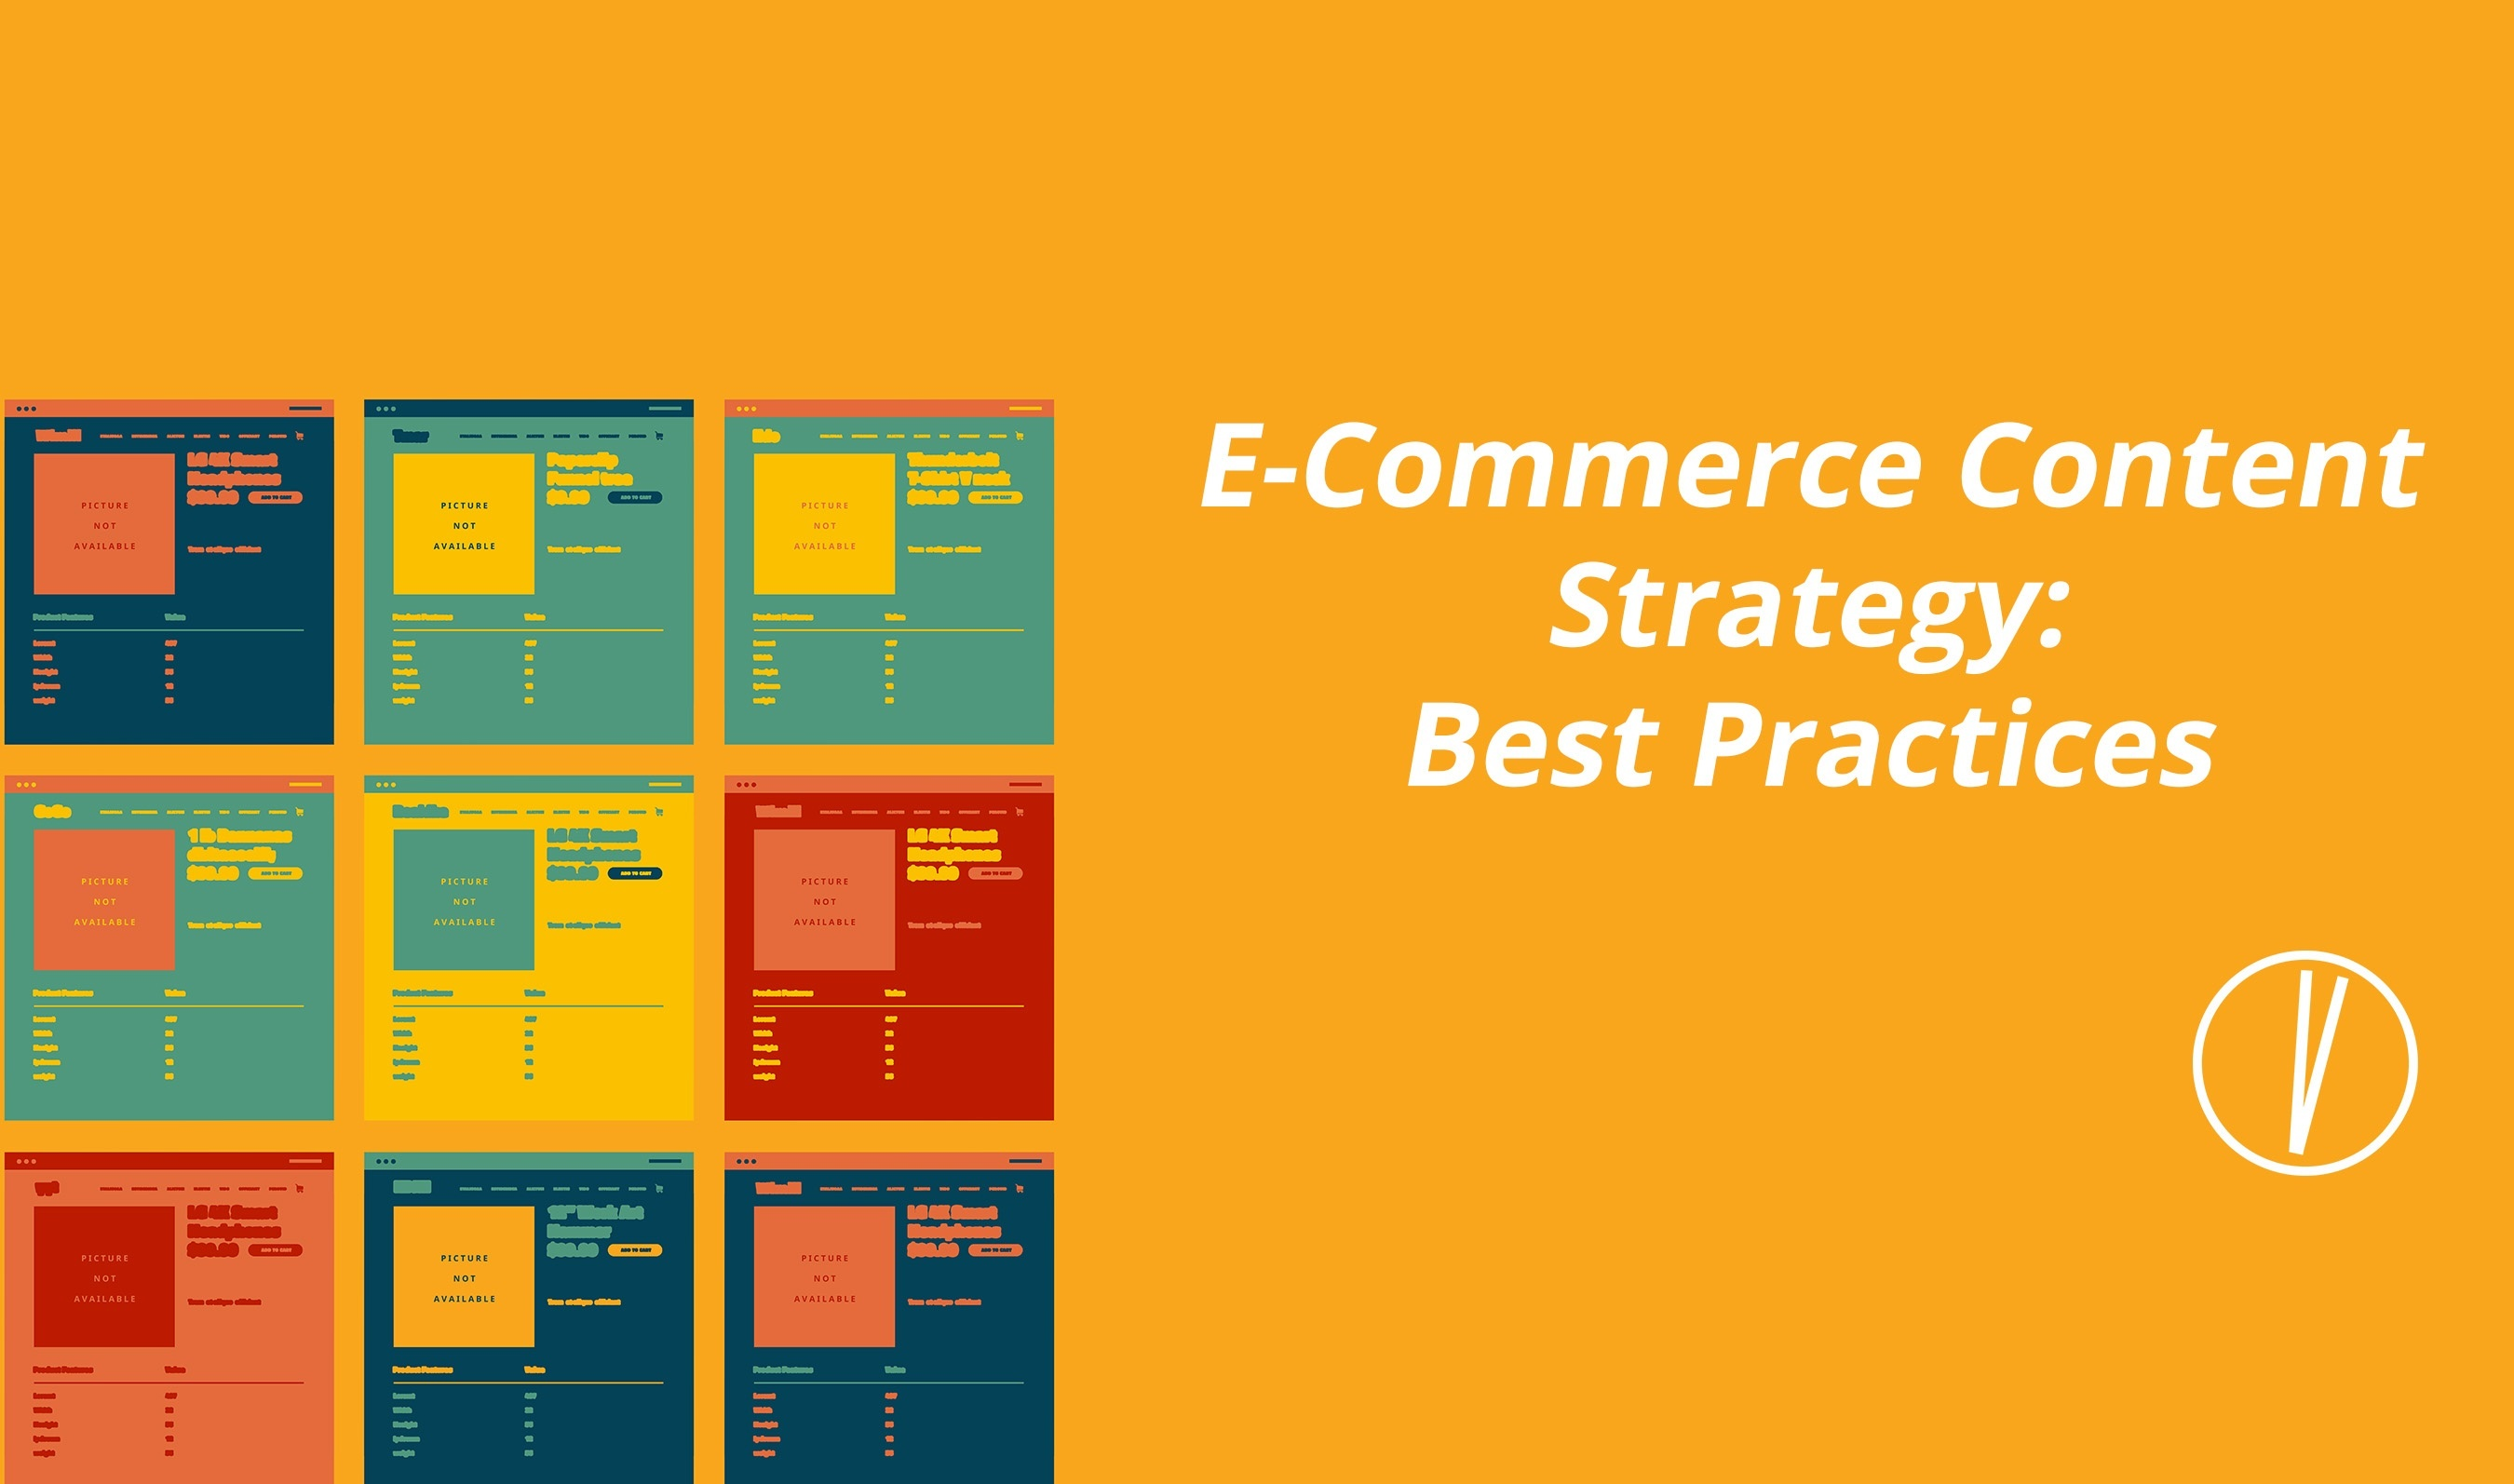 Ecommerce Content Strategy Using Buying Guides  by Virtucom Group.jpg